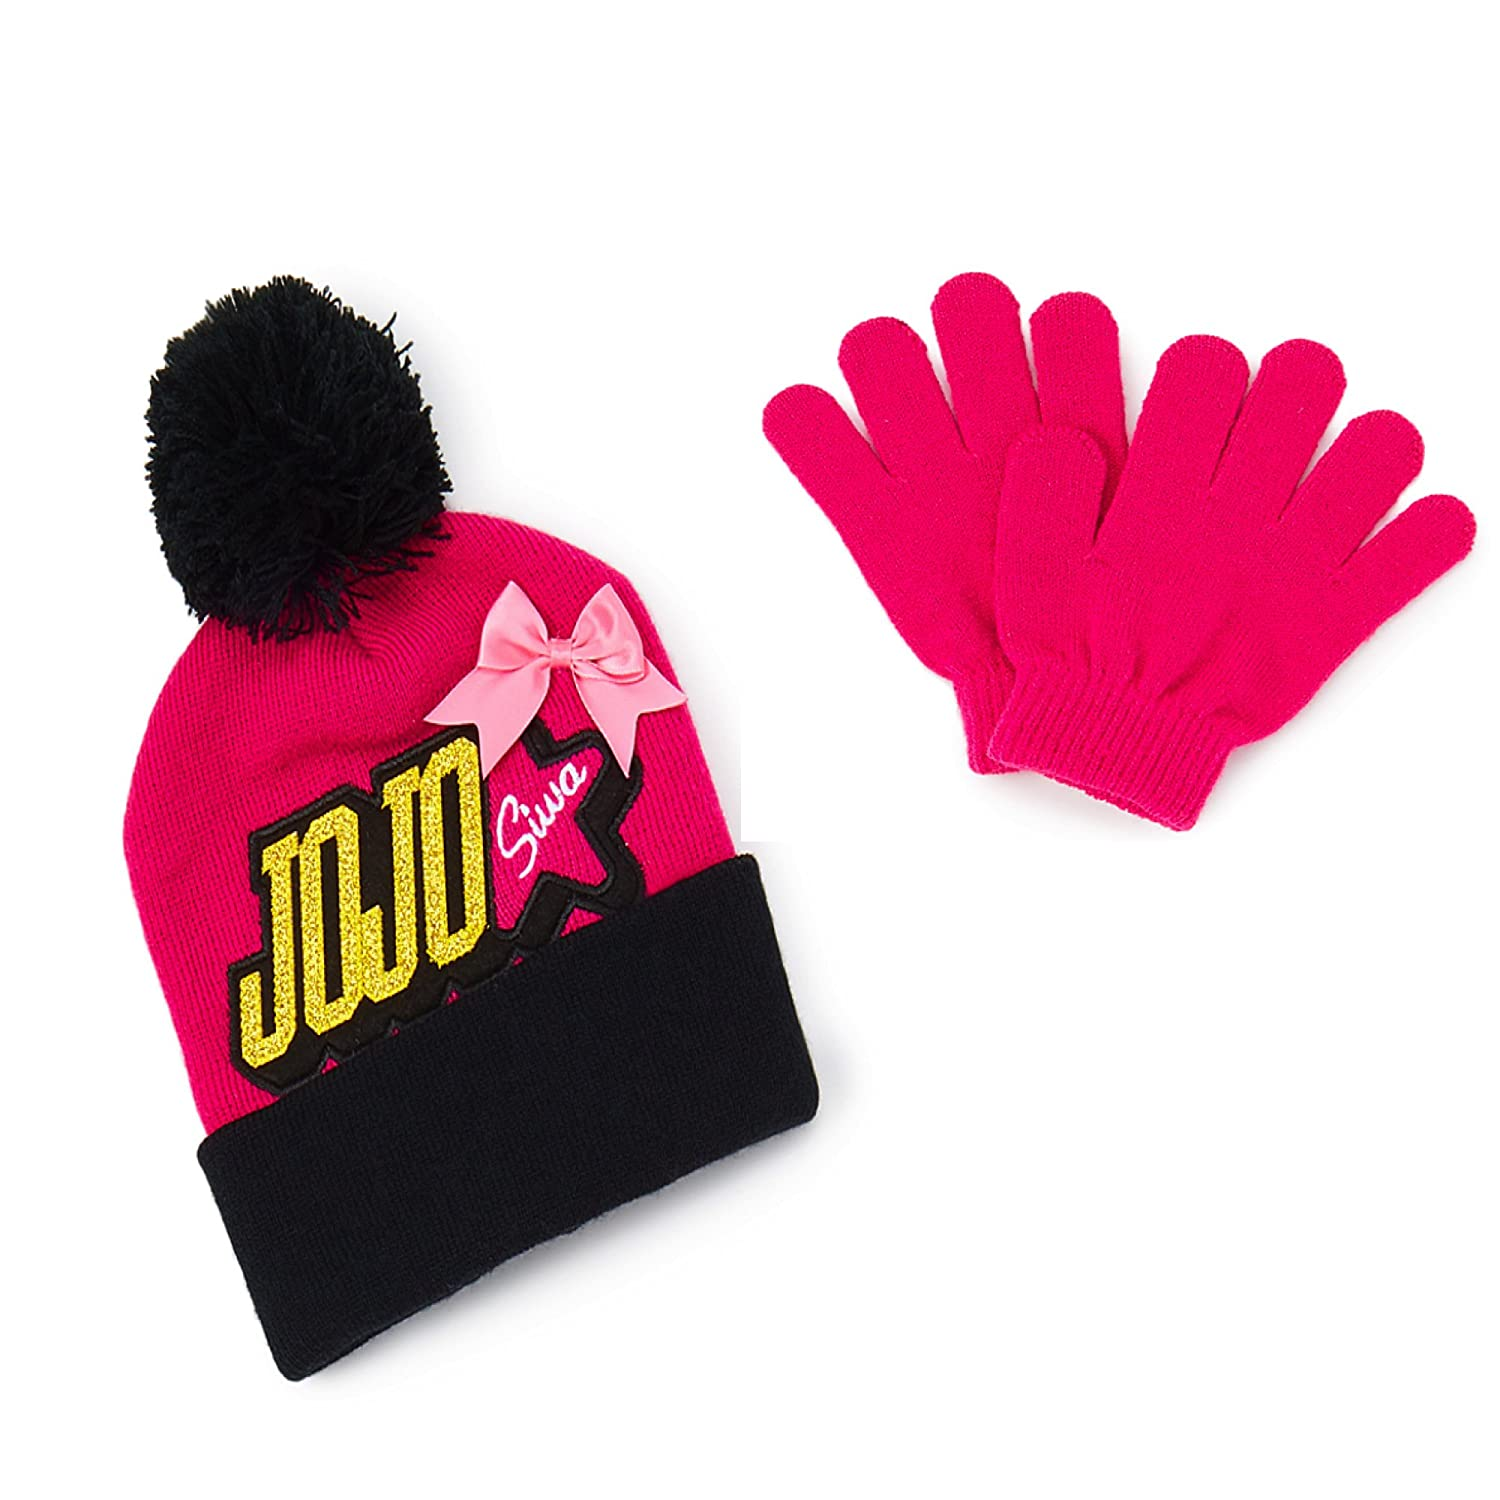 ee67866d3a0 JoJo Siwa Nickelodeon Beanie   Glove Set (Pink Black)  Amazon.ca  Clothing    Accessories